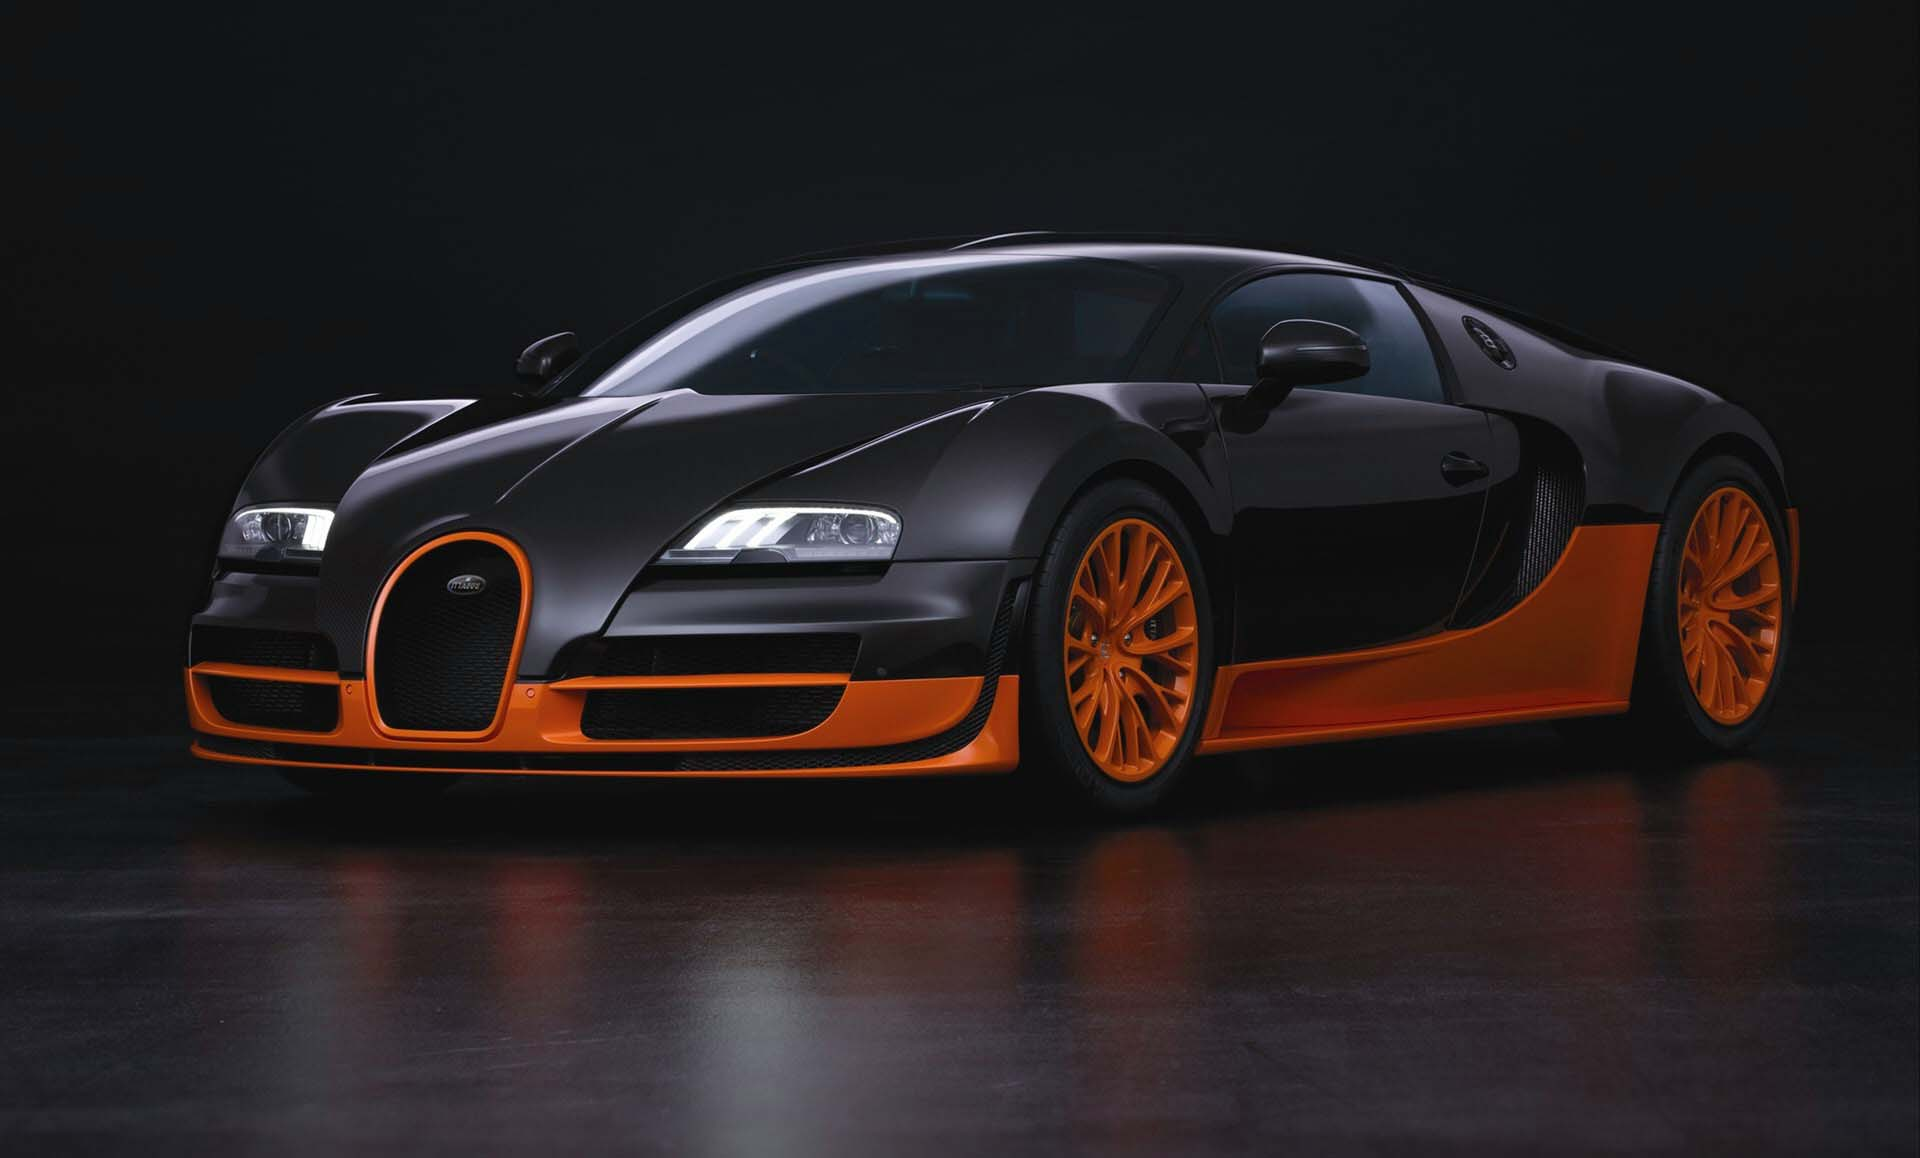 Bugatti Veyron Super Sport Desktop wallpaper